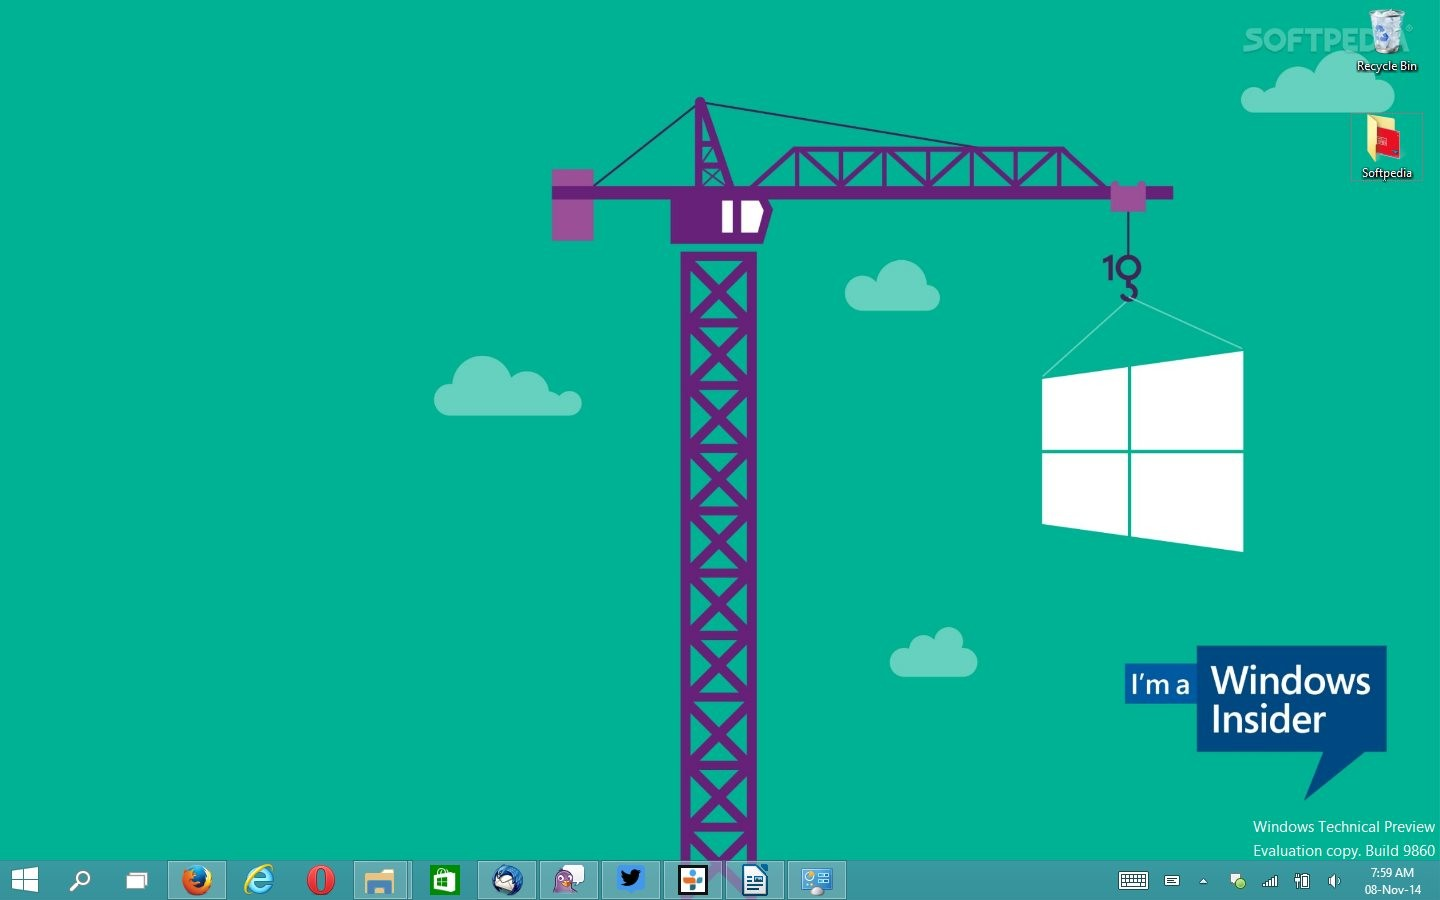 Microsoft Releases Wallpaper Pack for Windows 10 Users 464475 3jpg 1440x900